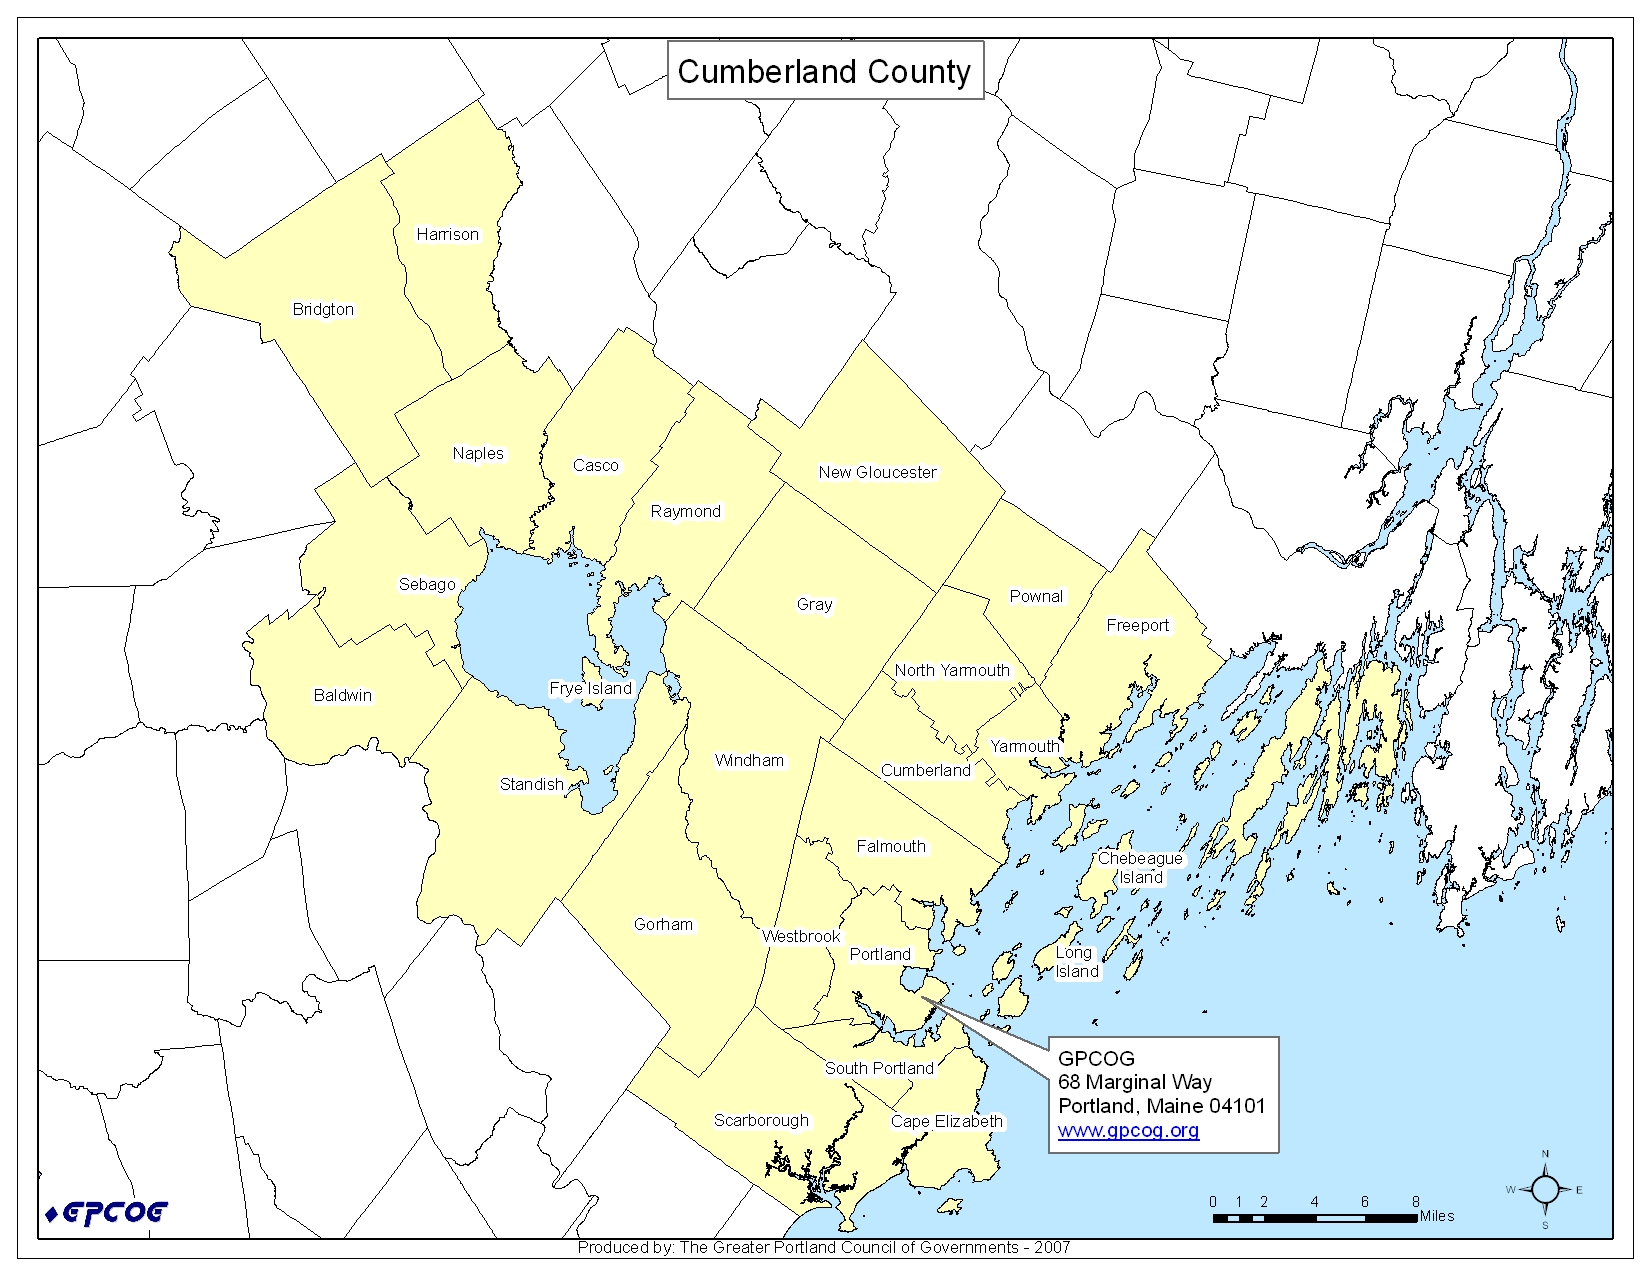 Cumberland County Map Cumberland Maine USA Mappery - Map of maine usa